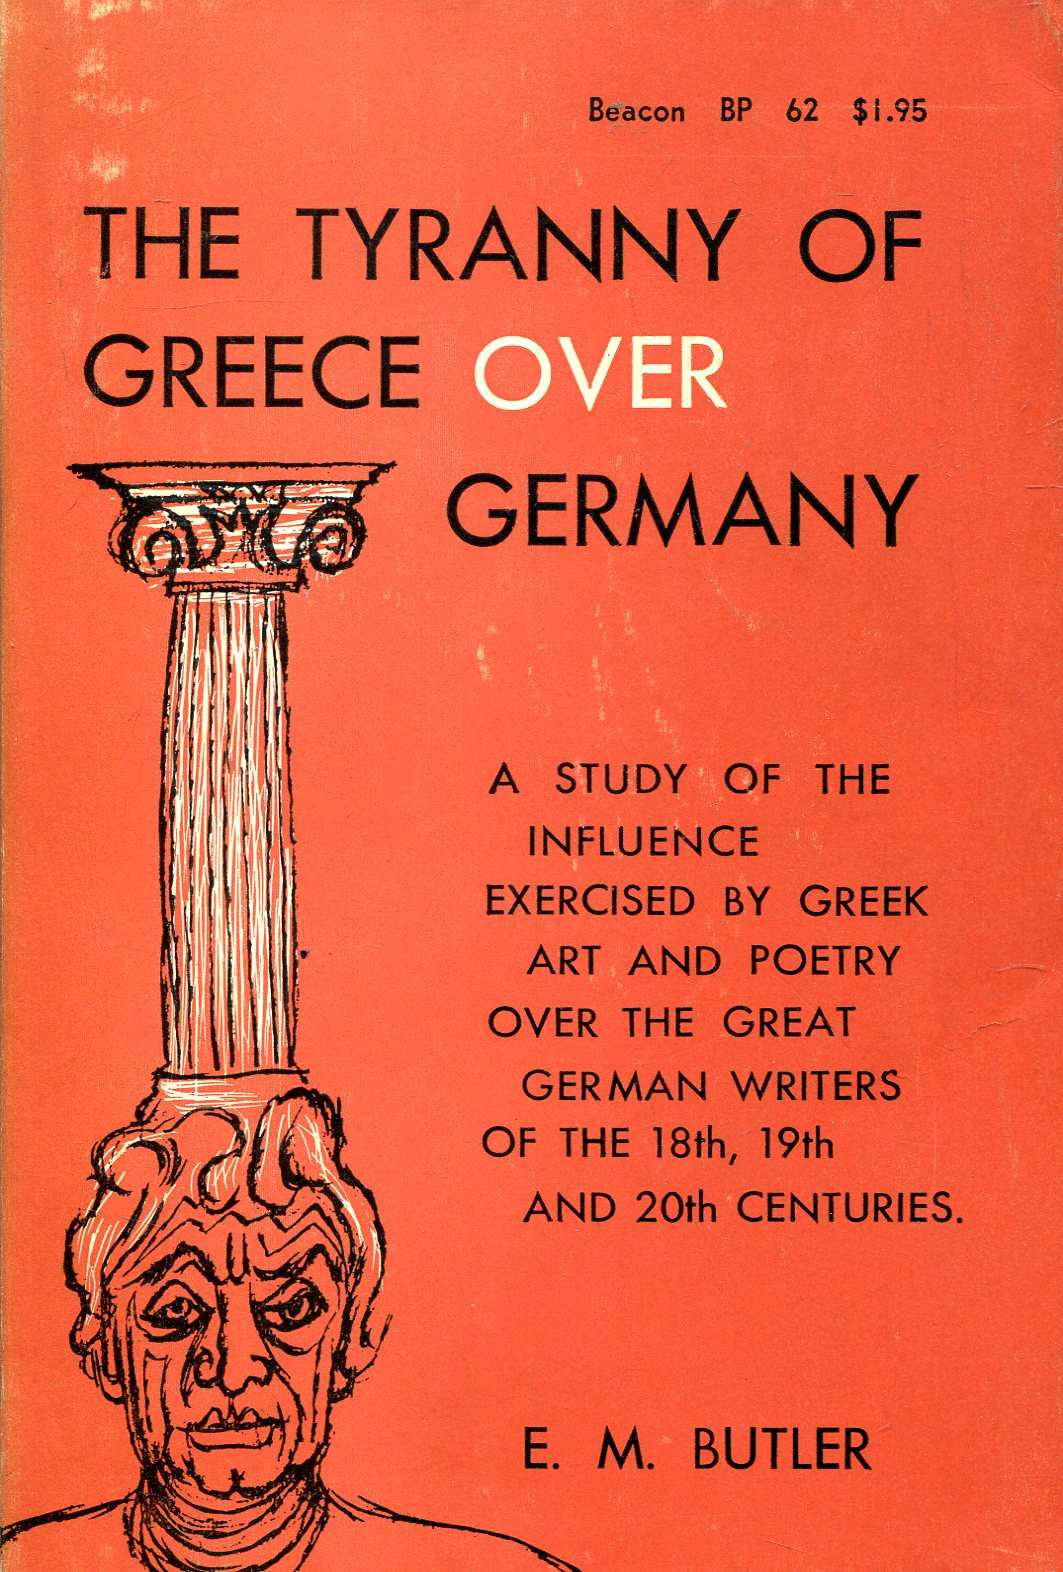 Image for The Tyranny of Greece over Germany : a study of the influence by Greek art and poetry over the great German writers